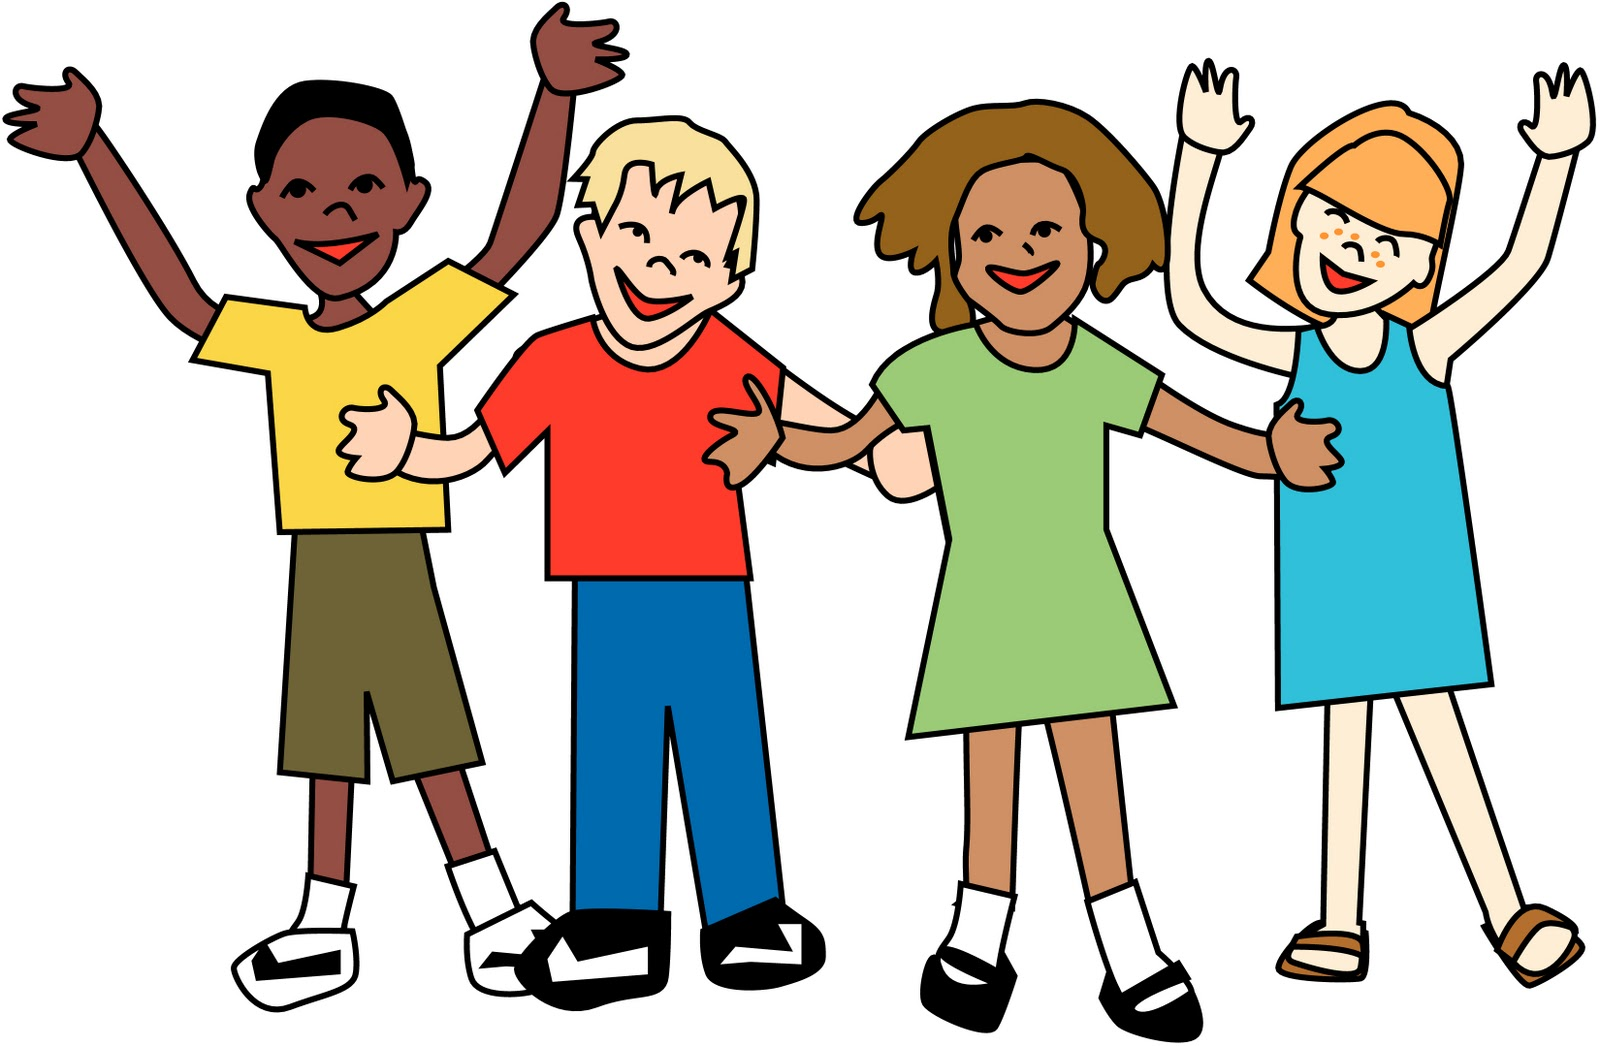 Caring clipart peer. Friendship at getdrawings com